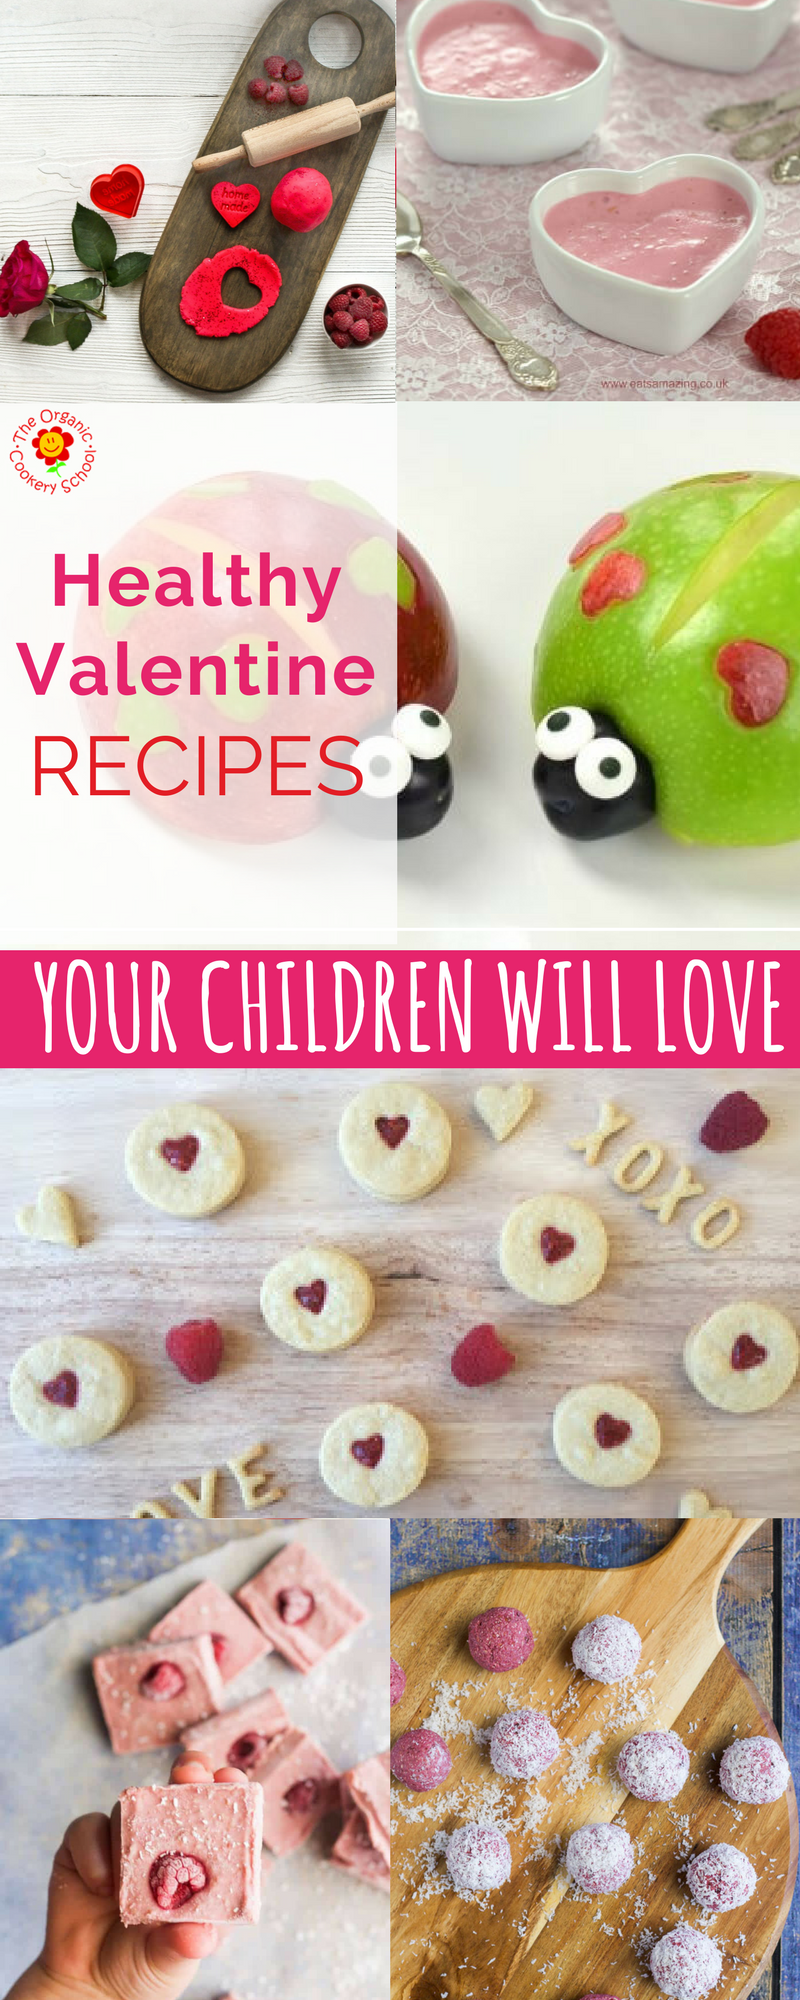 HEALTHY VALENTINES RECIPES YOUR CHILDREN WILL LOVE.png